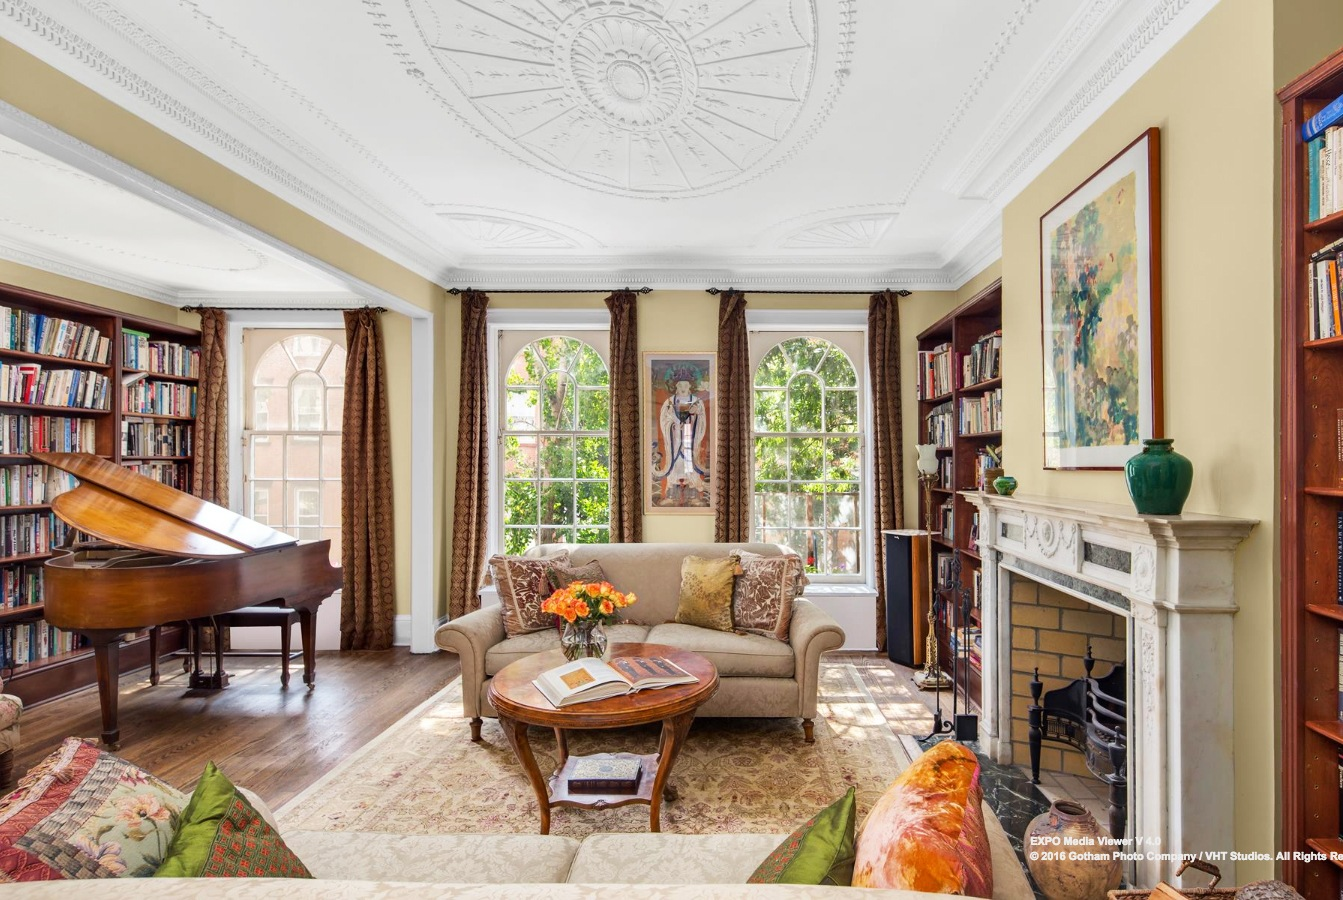 121 Washington Place, West Village, townhouse, artists studio, carriage house, outdoor space, cool listings, historic homes